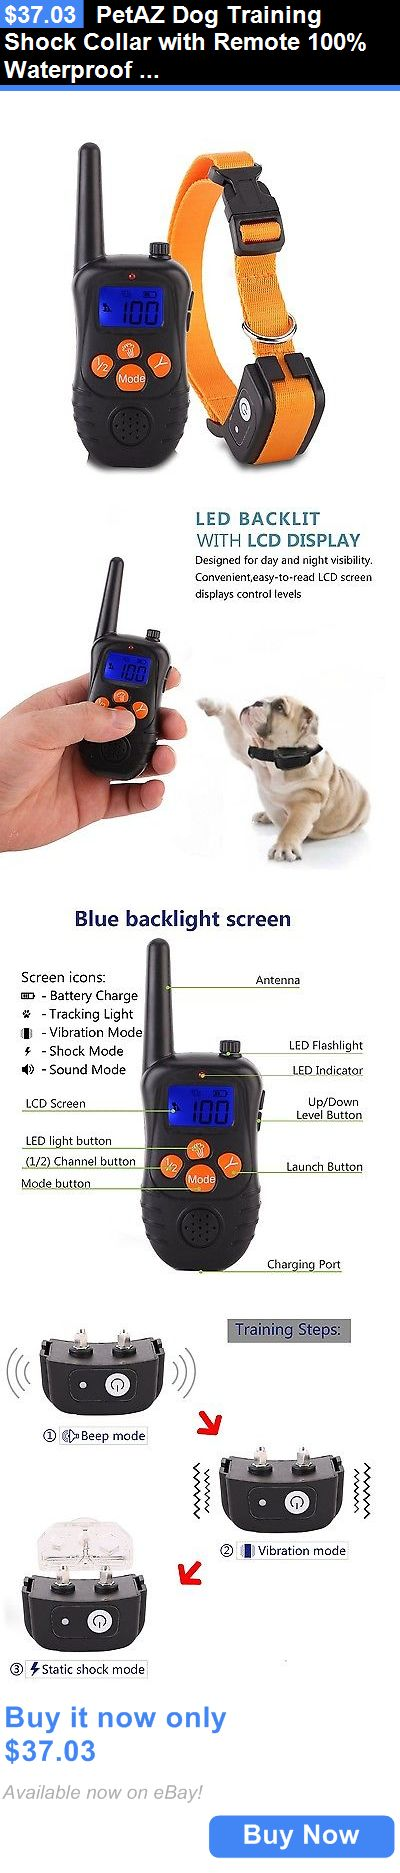 Animals Dog: Petaz Dog Training Shock Collar With Remote 100% Waterproof For Puppy Small M... BUY IT NOW ONLY: $37.03